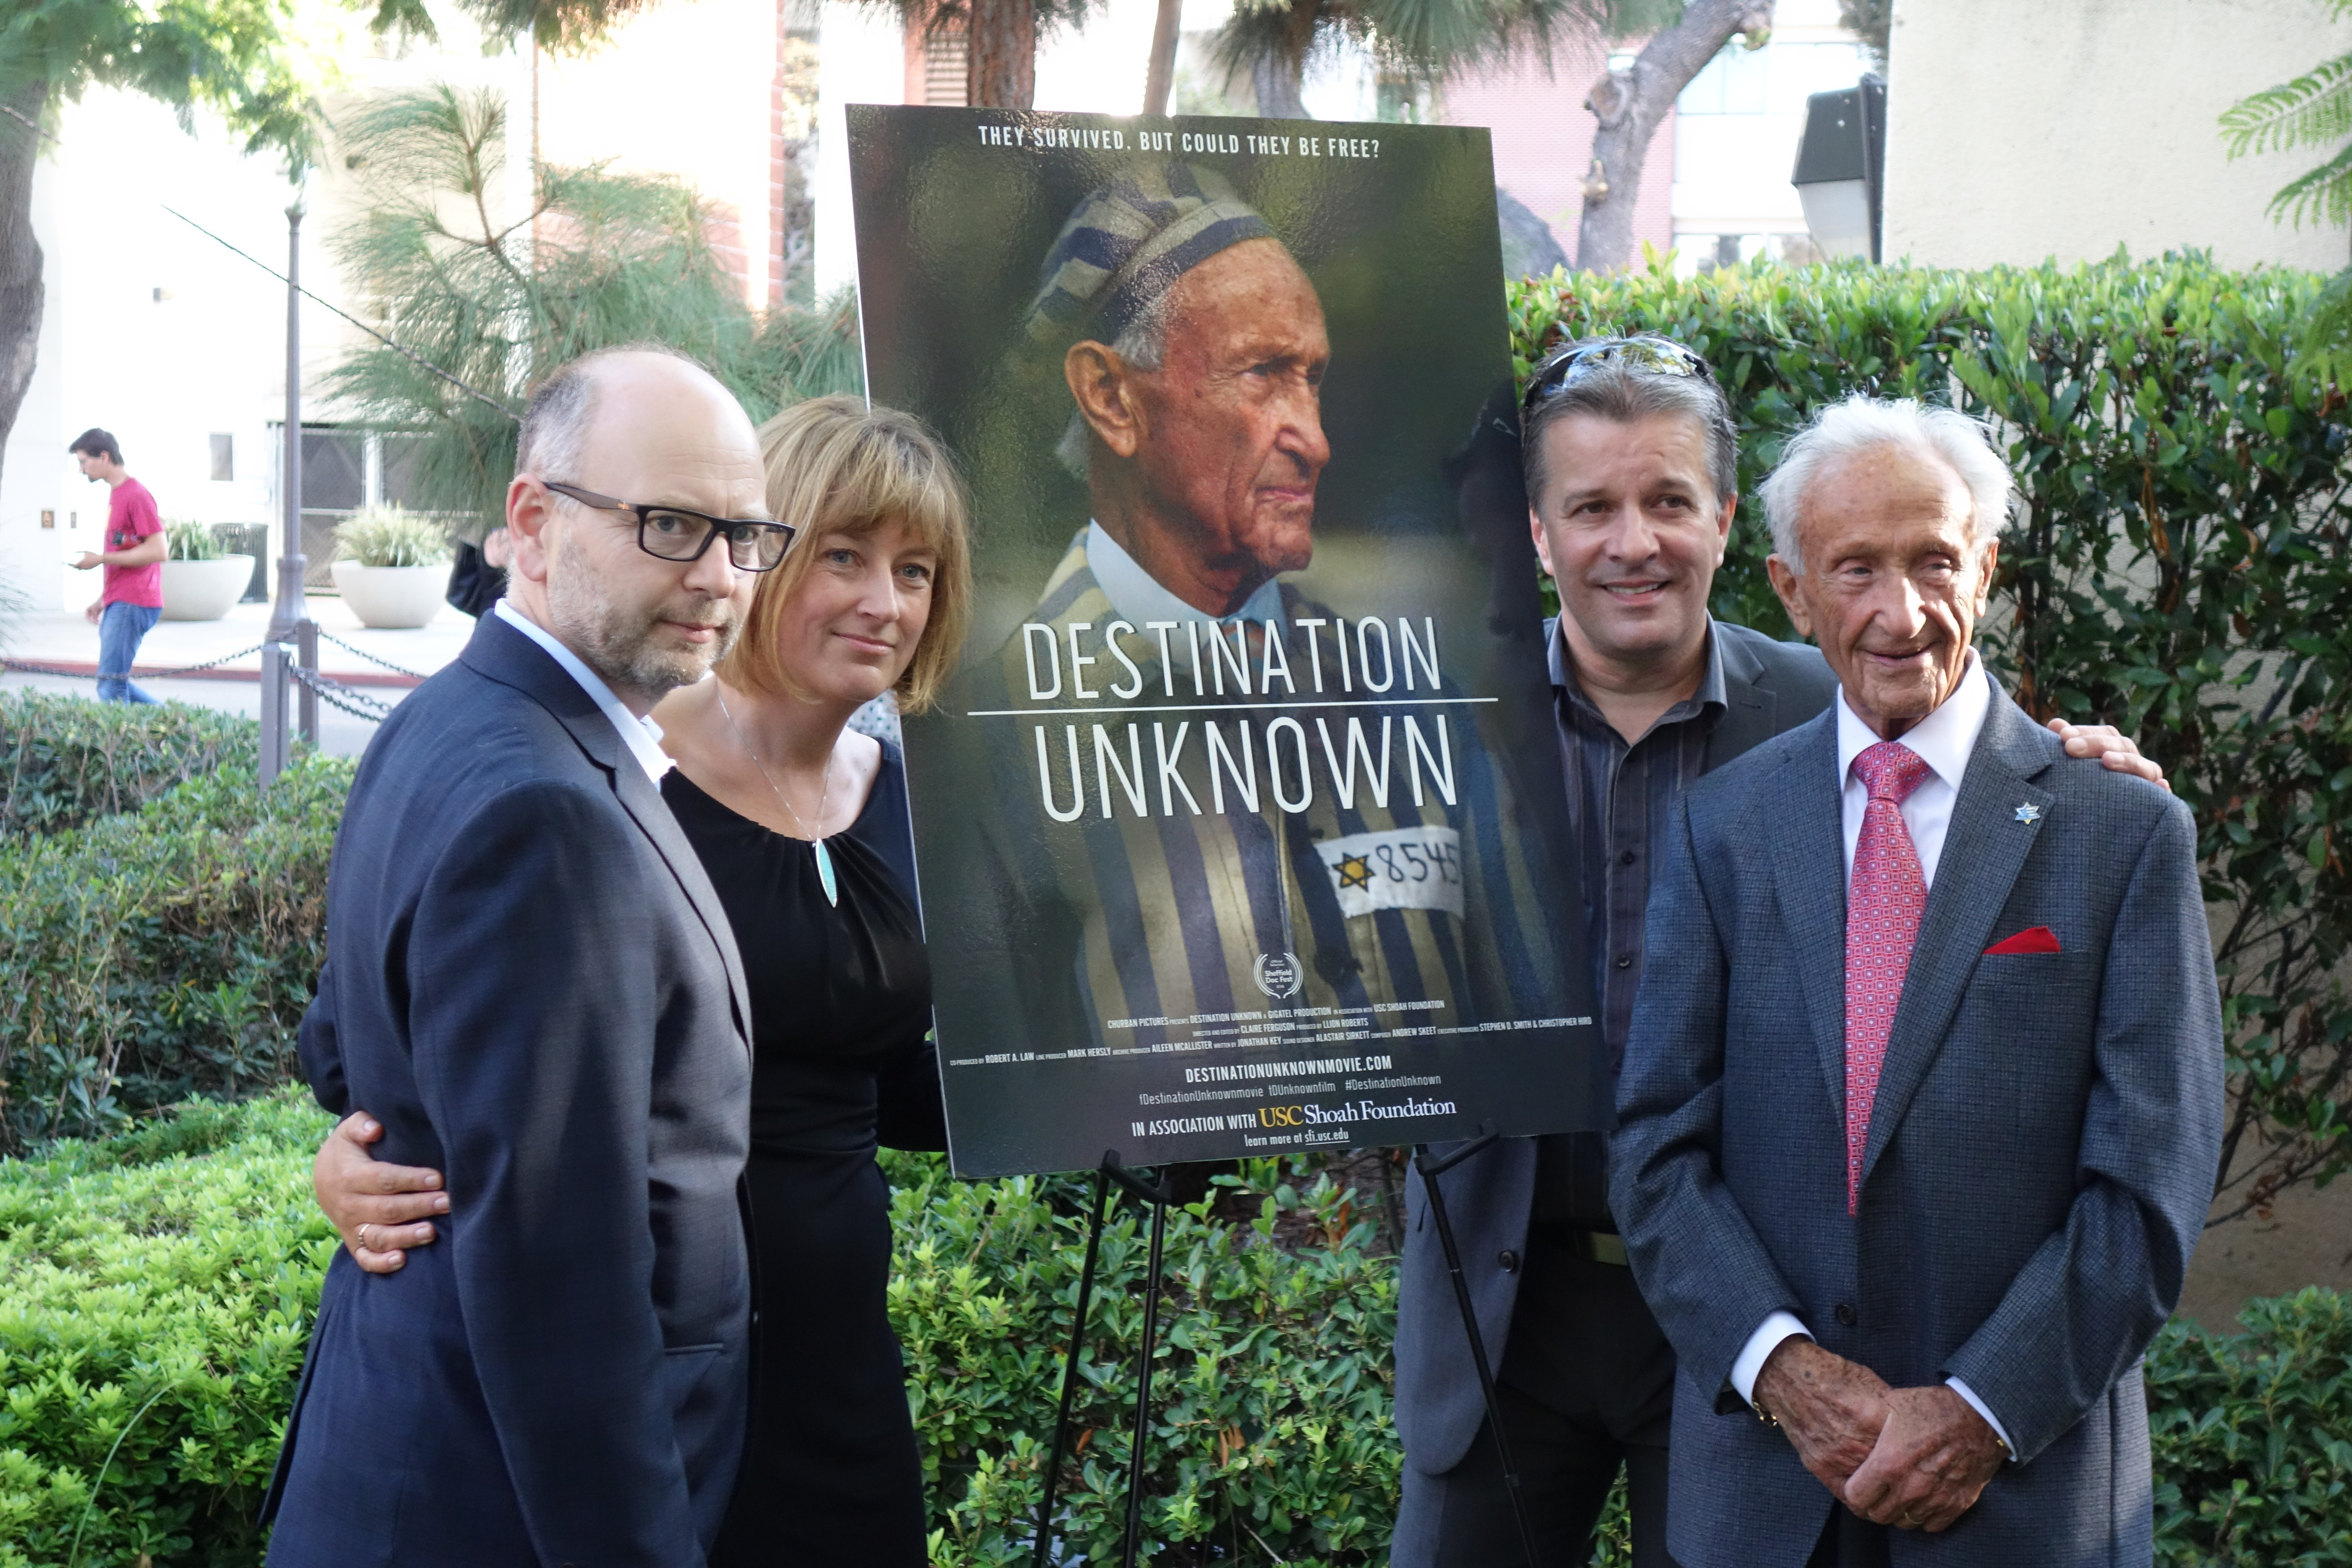 Stephen Smith, Claire Ferguson, Llion Roberts and Ed Mosberg at the USC screening